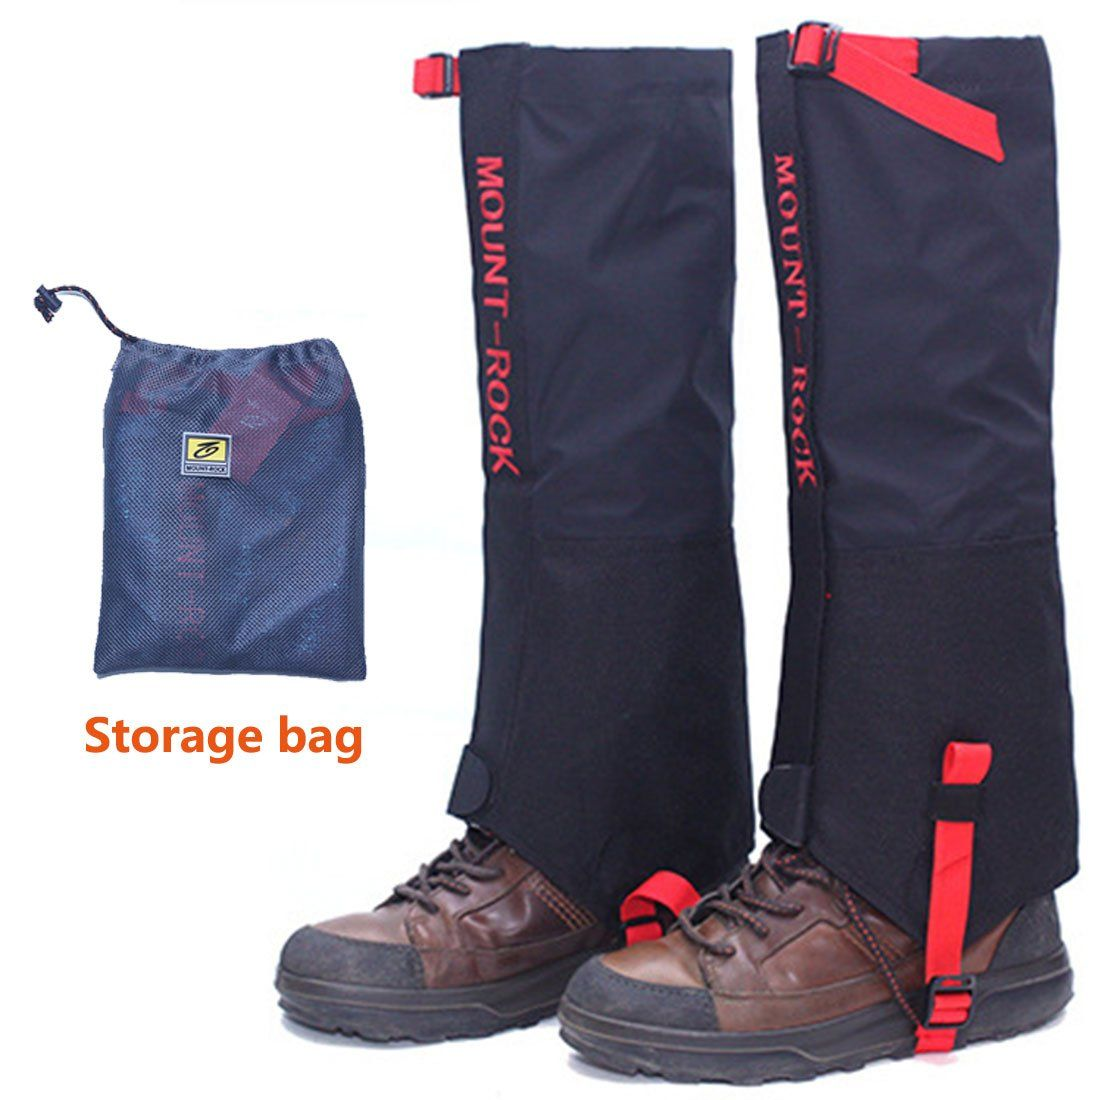 Black Crystal Hiking Ski Snow Gaiters Waterproof Breathable Nylon Mens Black Size Extra Large